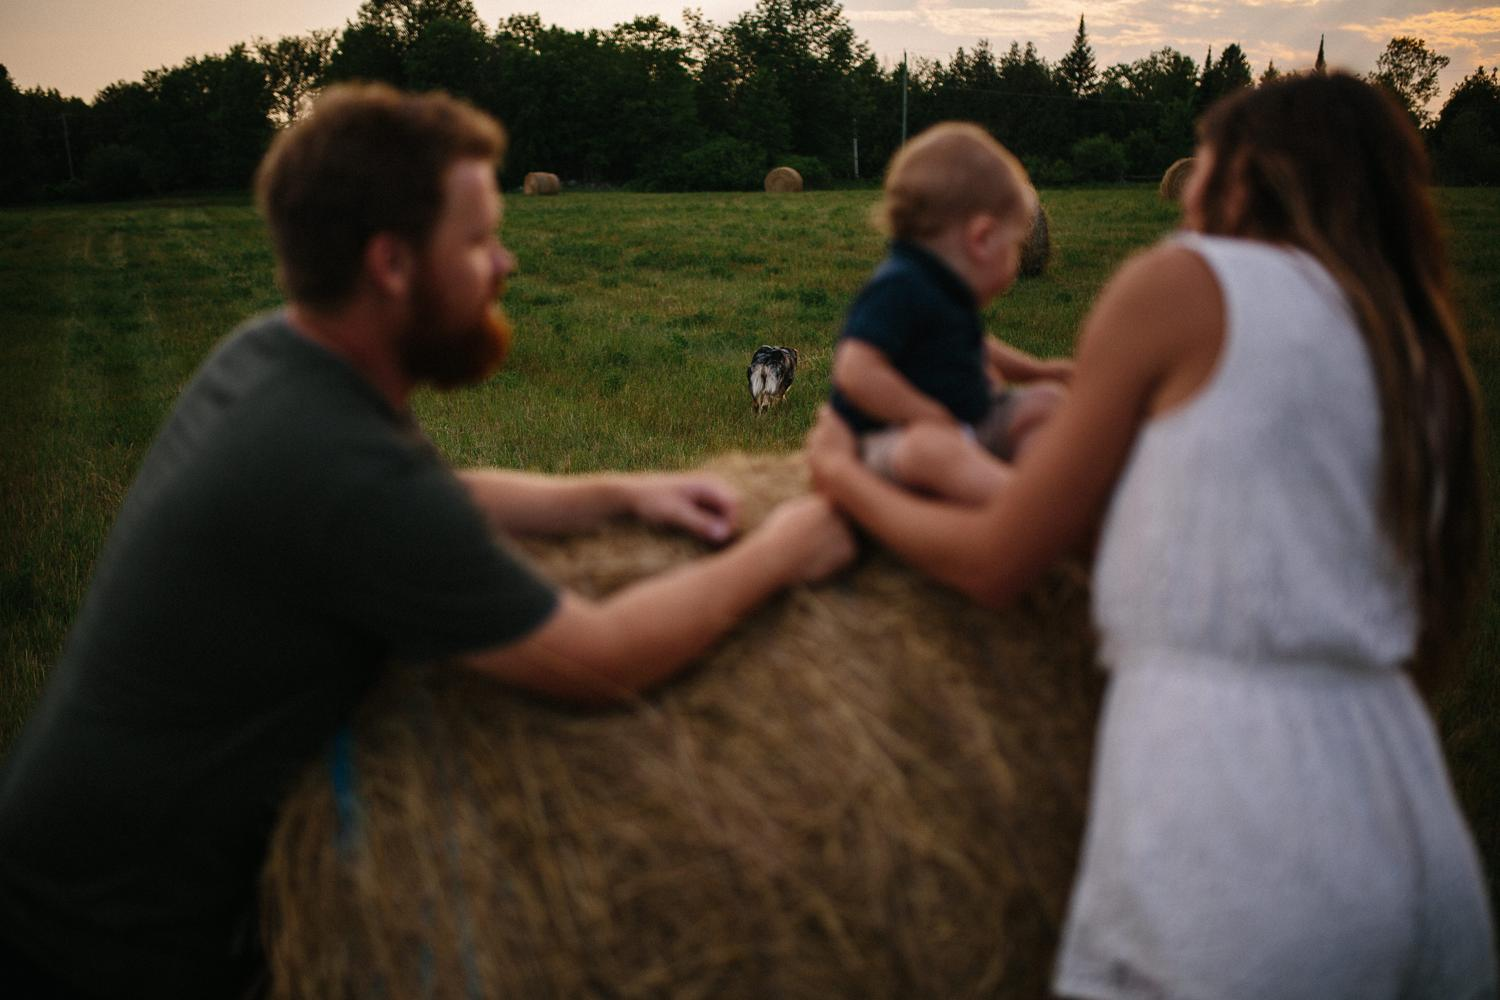 lanark highlands farm family photo session - kerry ford photography-077.jpg